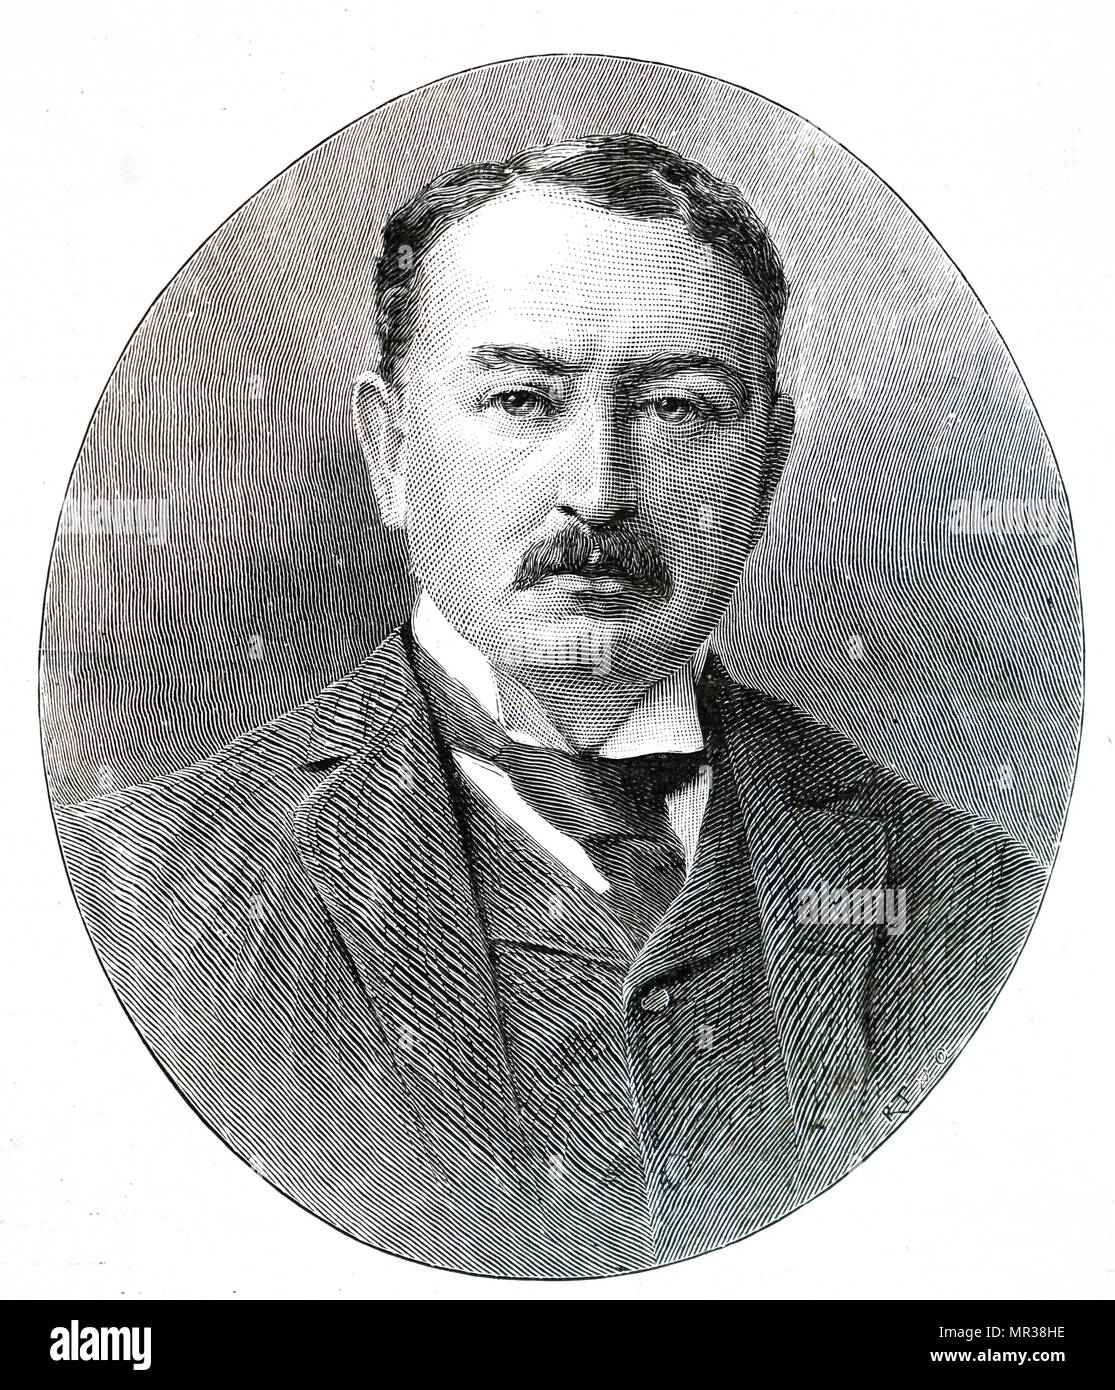 Portrait of Cecil Rhodes (1853-1902) a British businessman, mining magnate, politician and former Prime Minister of the Cape Colony. Dated 19th century - Stock Image